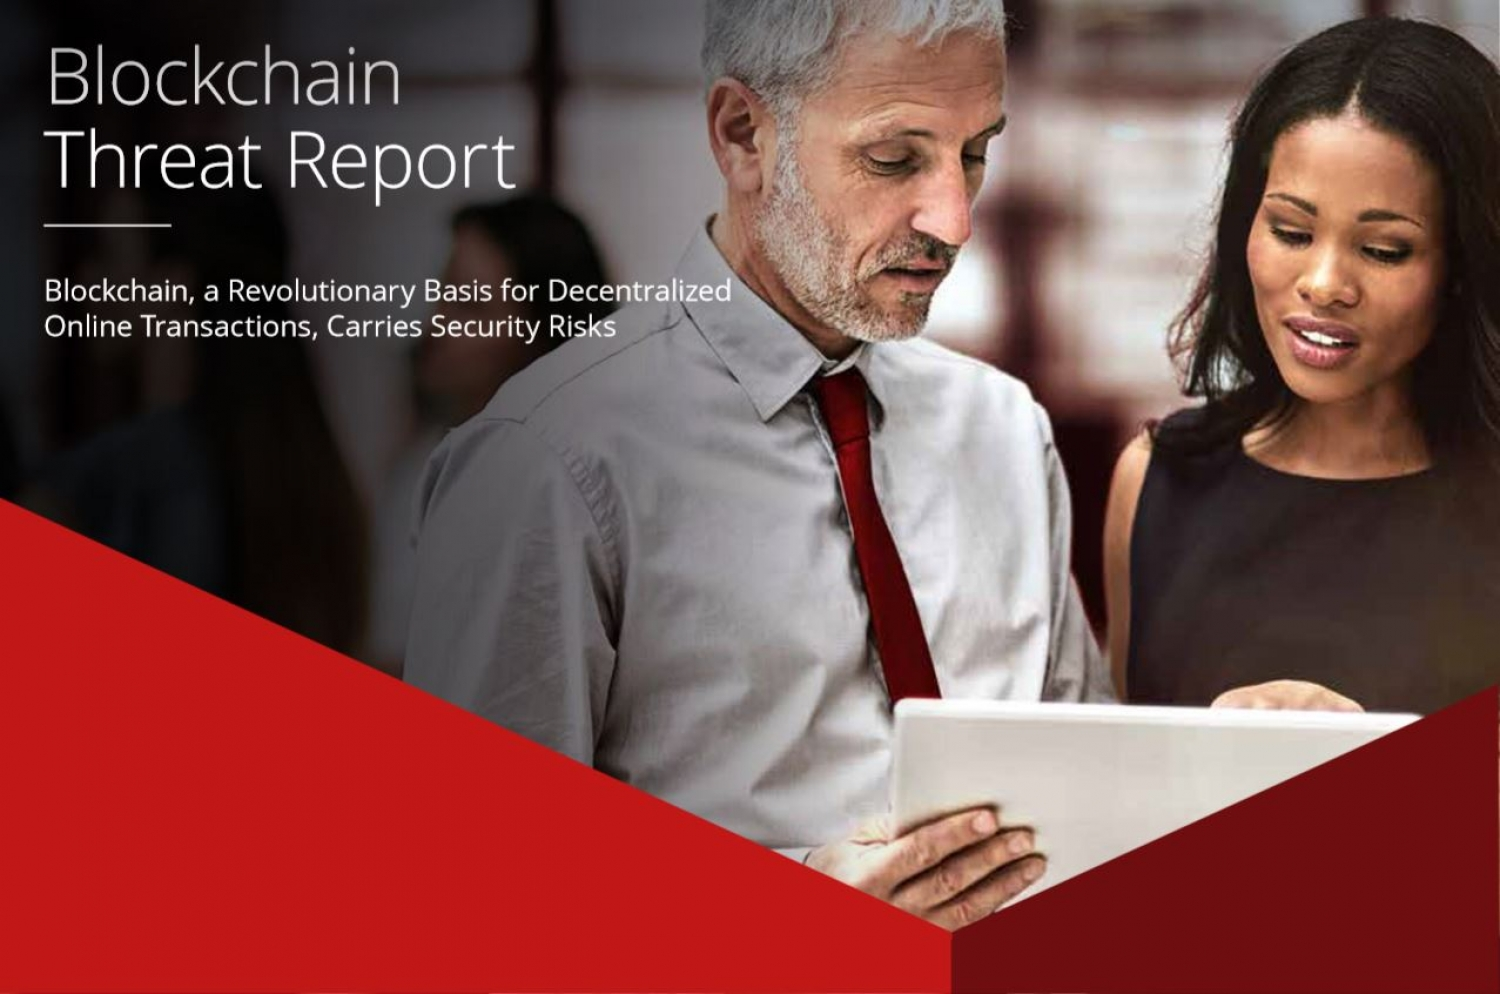 BLOCKCHAIN THREAT REPORT: MCAFEE